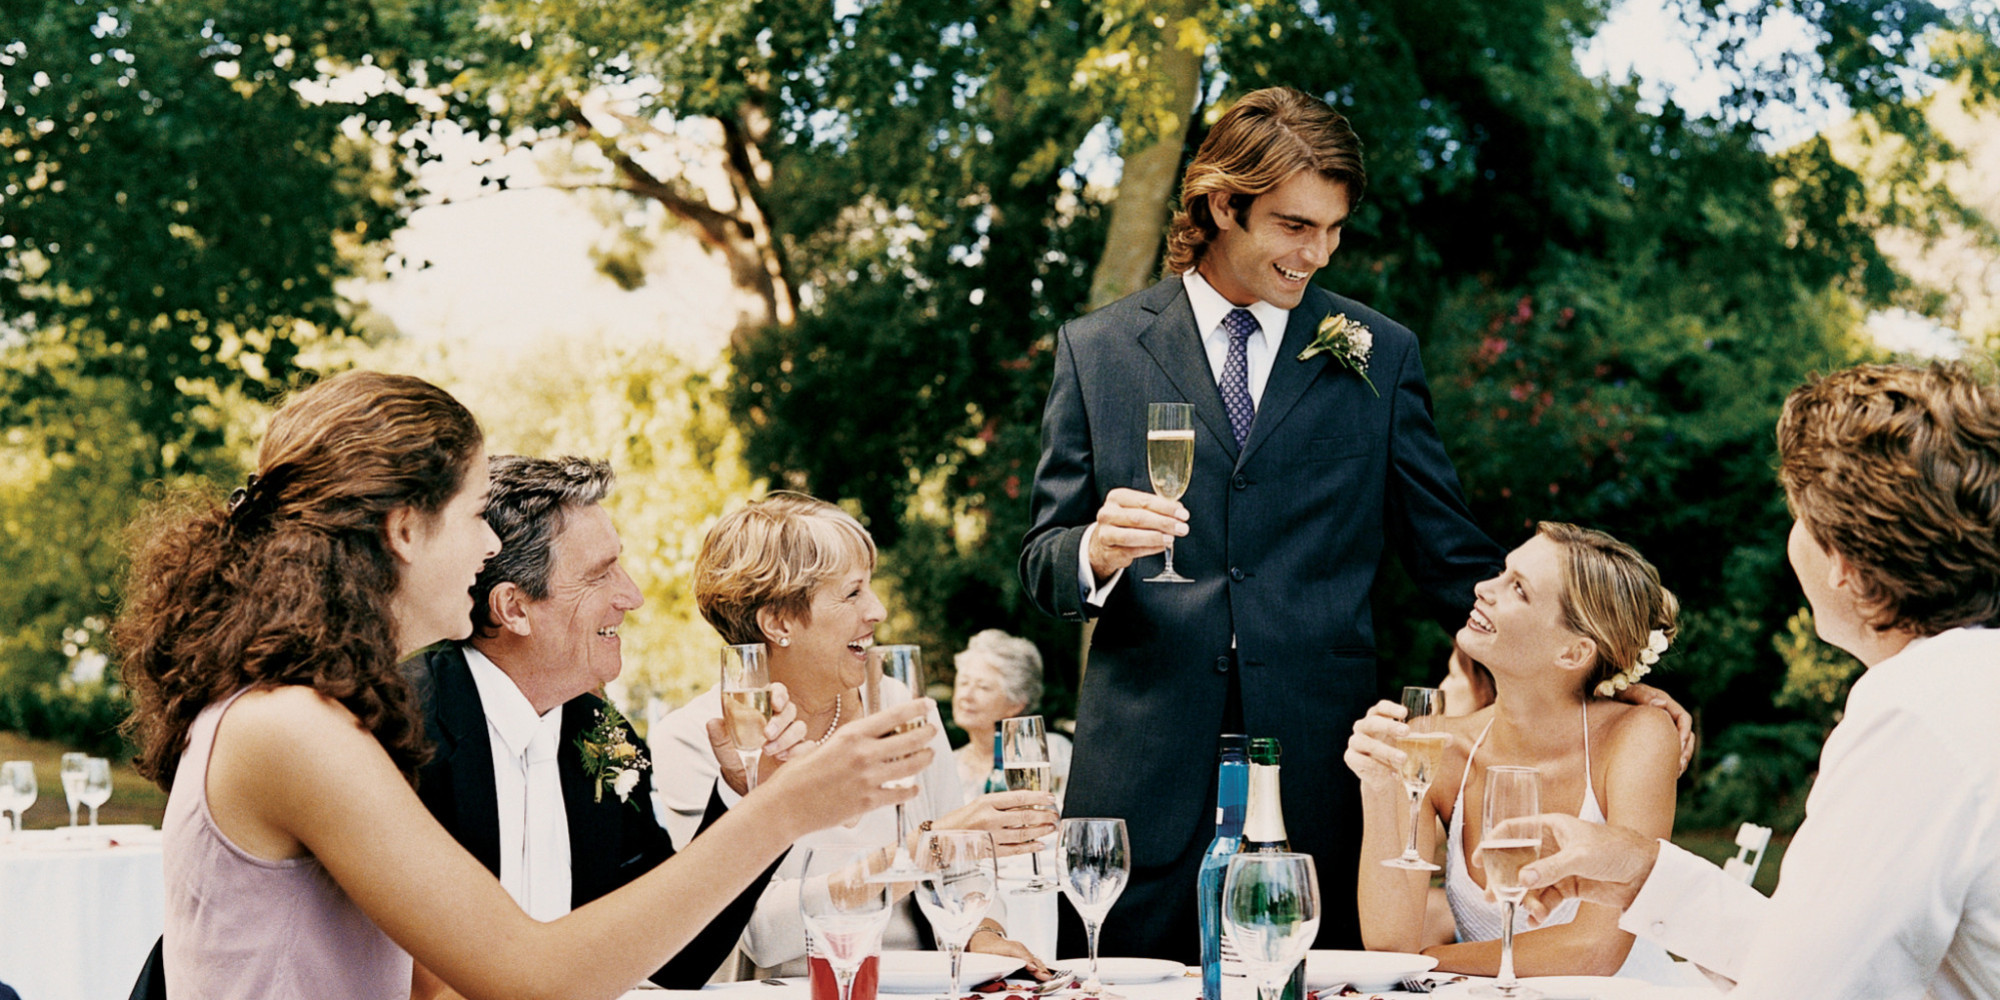 Five Wedding Toasts To Reconsider